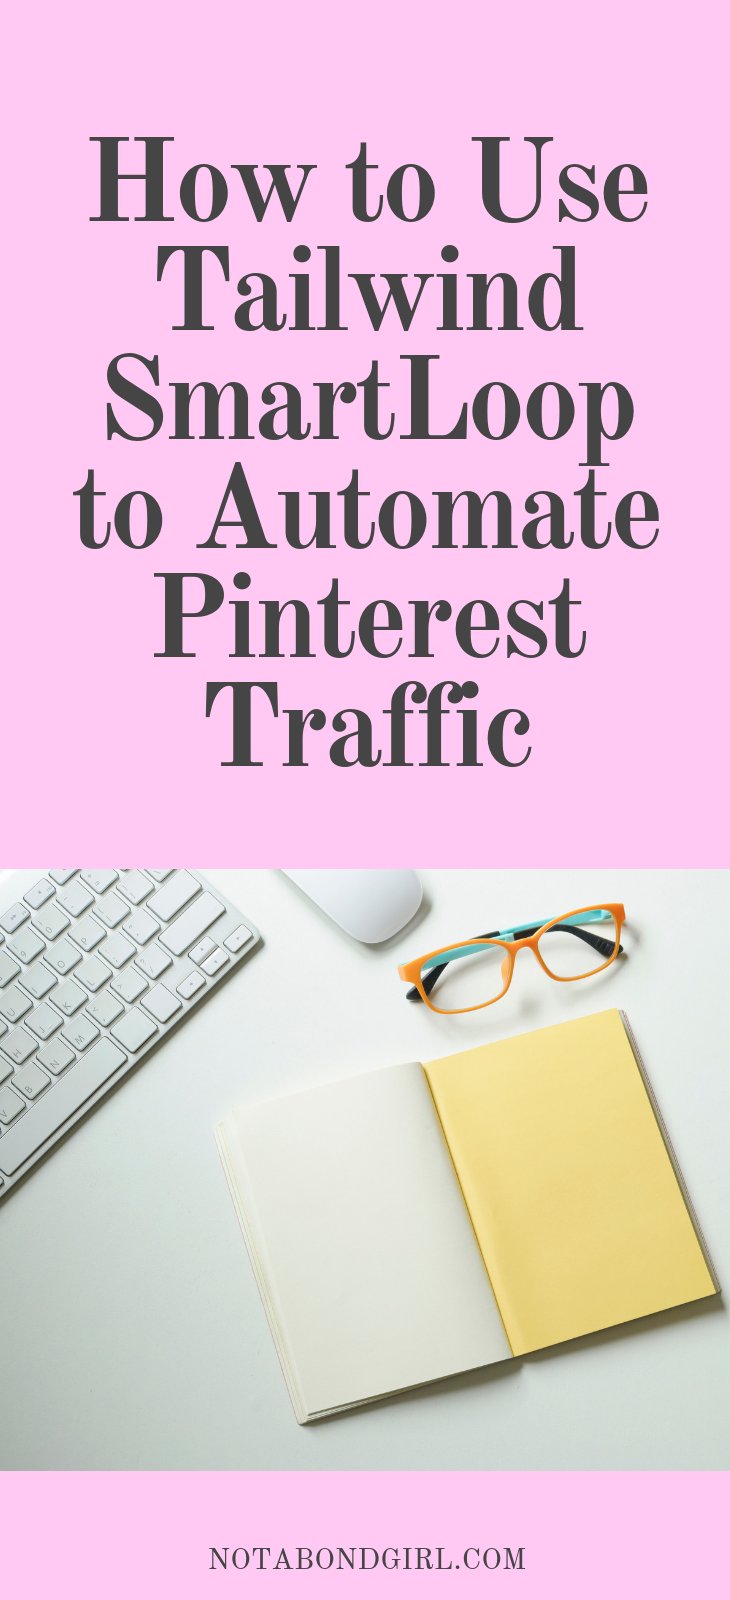 How to Use Tailwind SmartLoop to Automate Your Pinterest Traffic